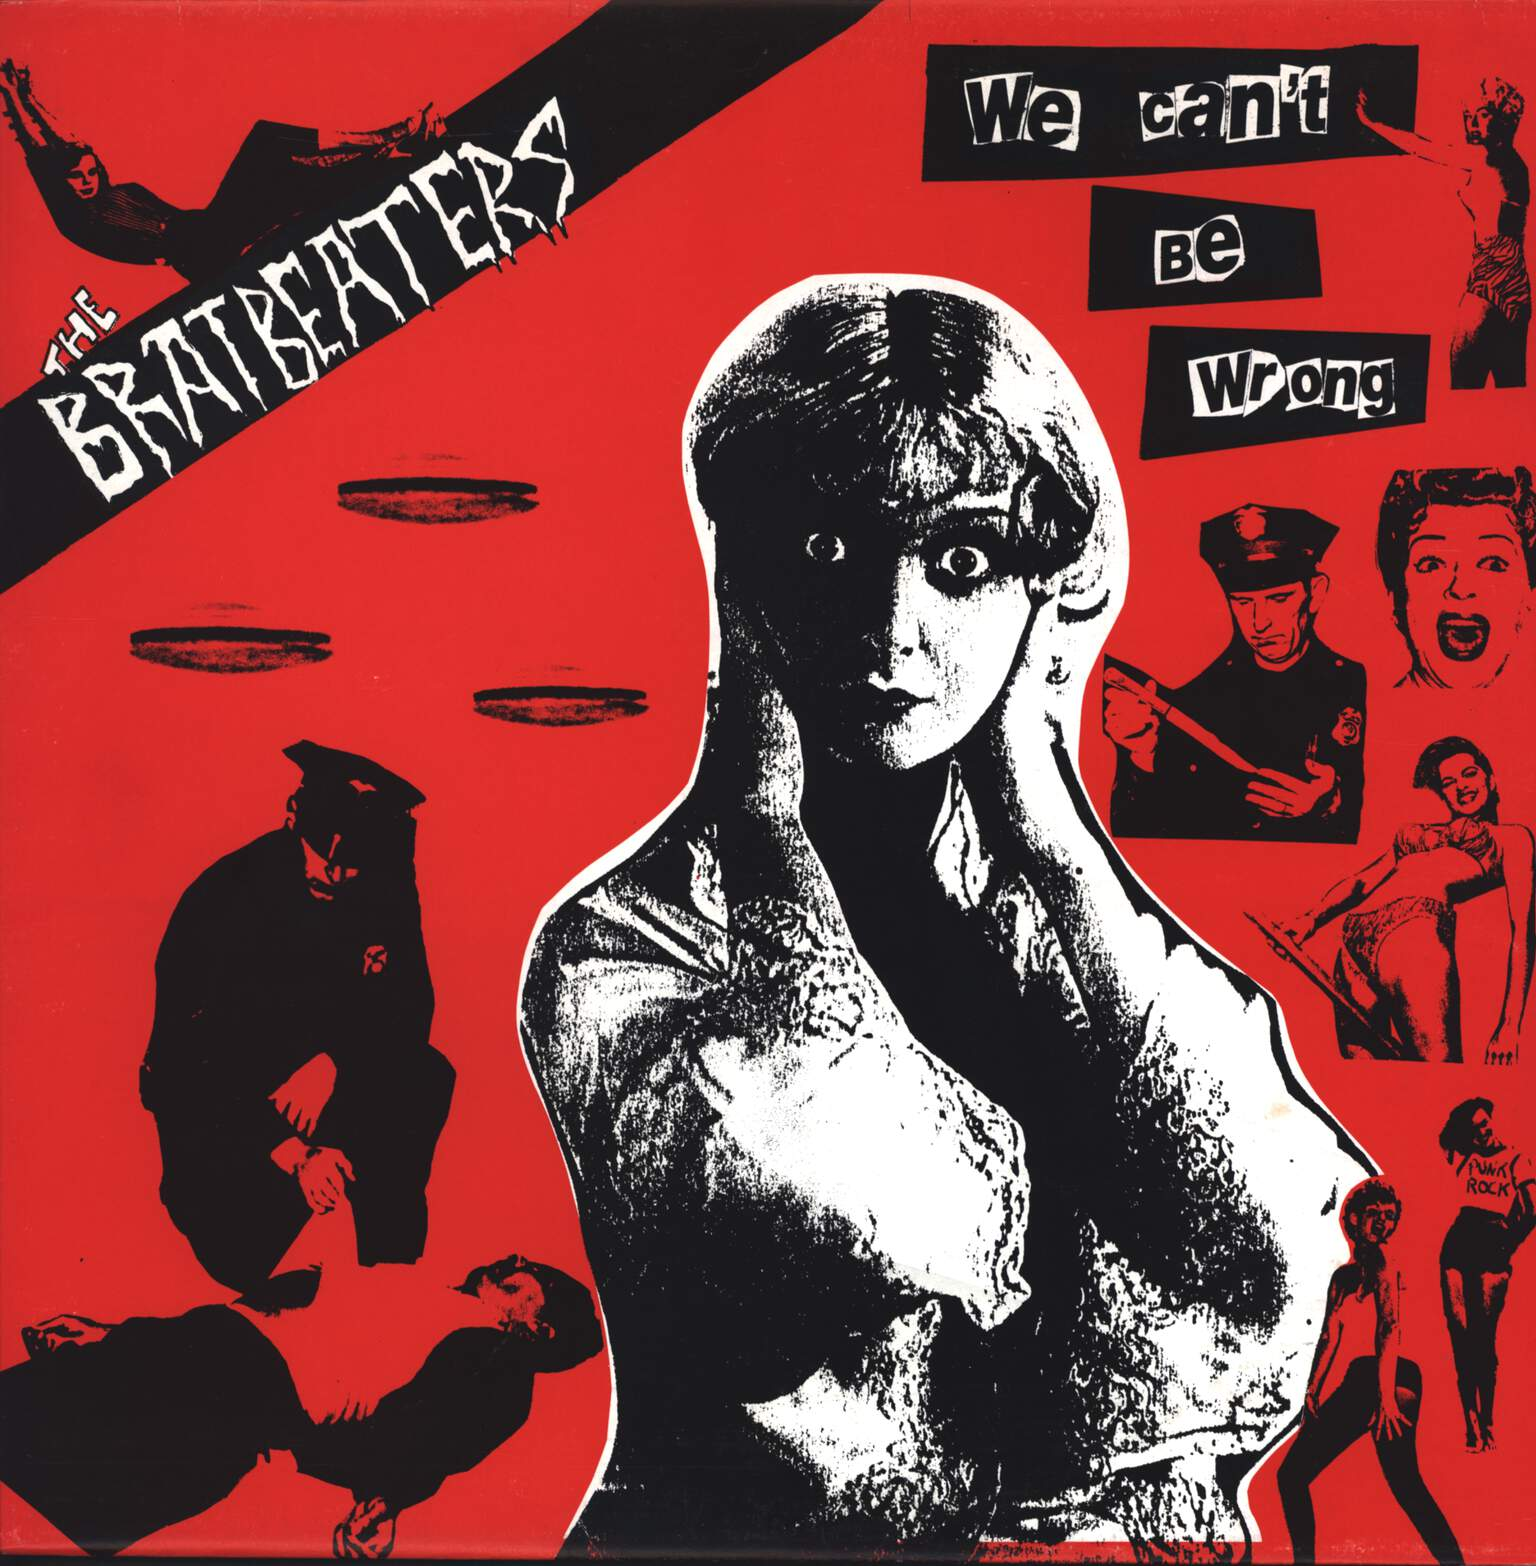 The Bratbeaters: We Can't Be Wrong, LP (Vinyl)